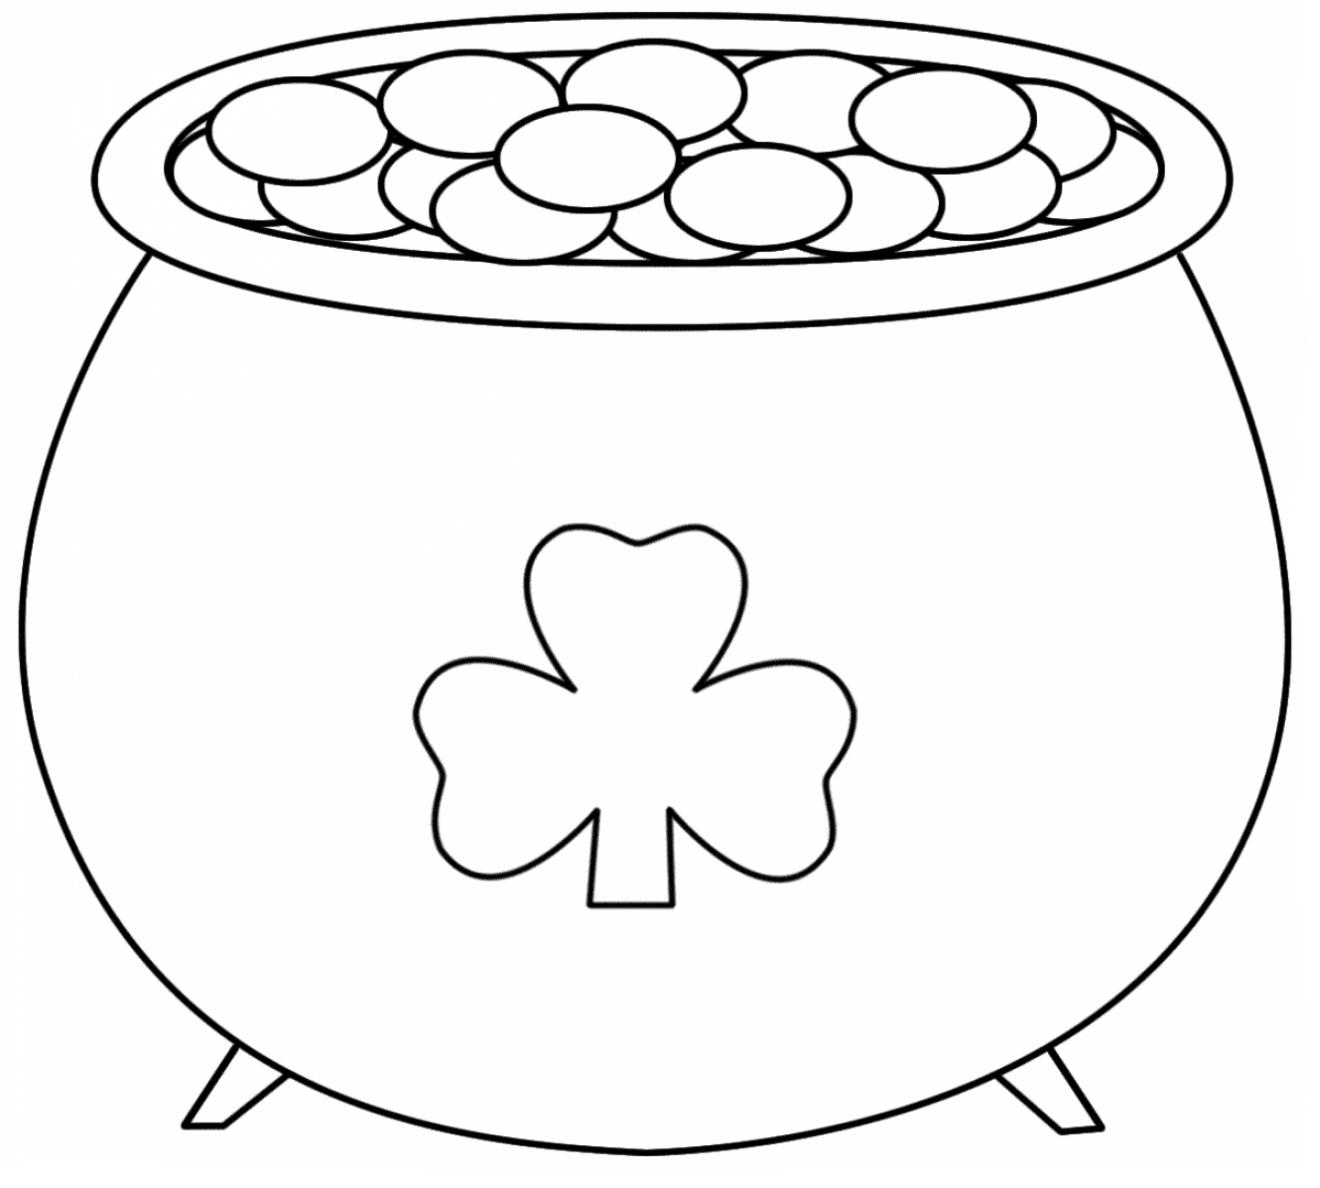 Pot Of Gold Coloring Pages Best Coloring Pages For Kids